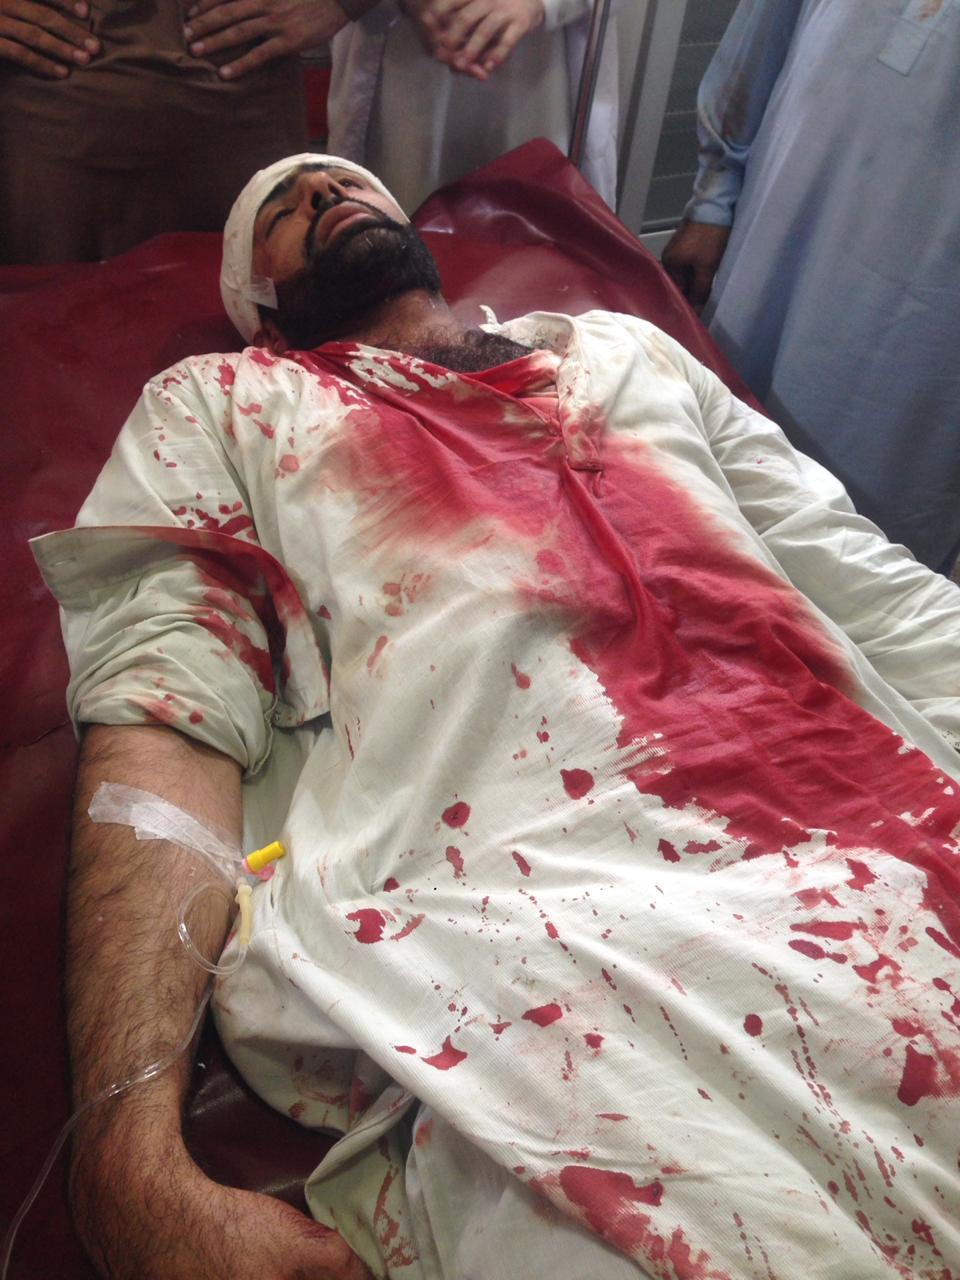 One of the Injured Doctors in Pakistan's Khyber Police Baton charge